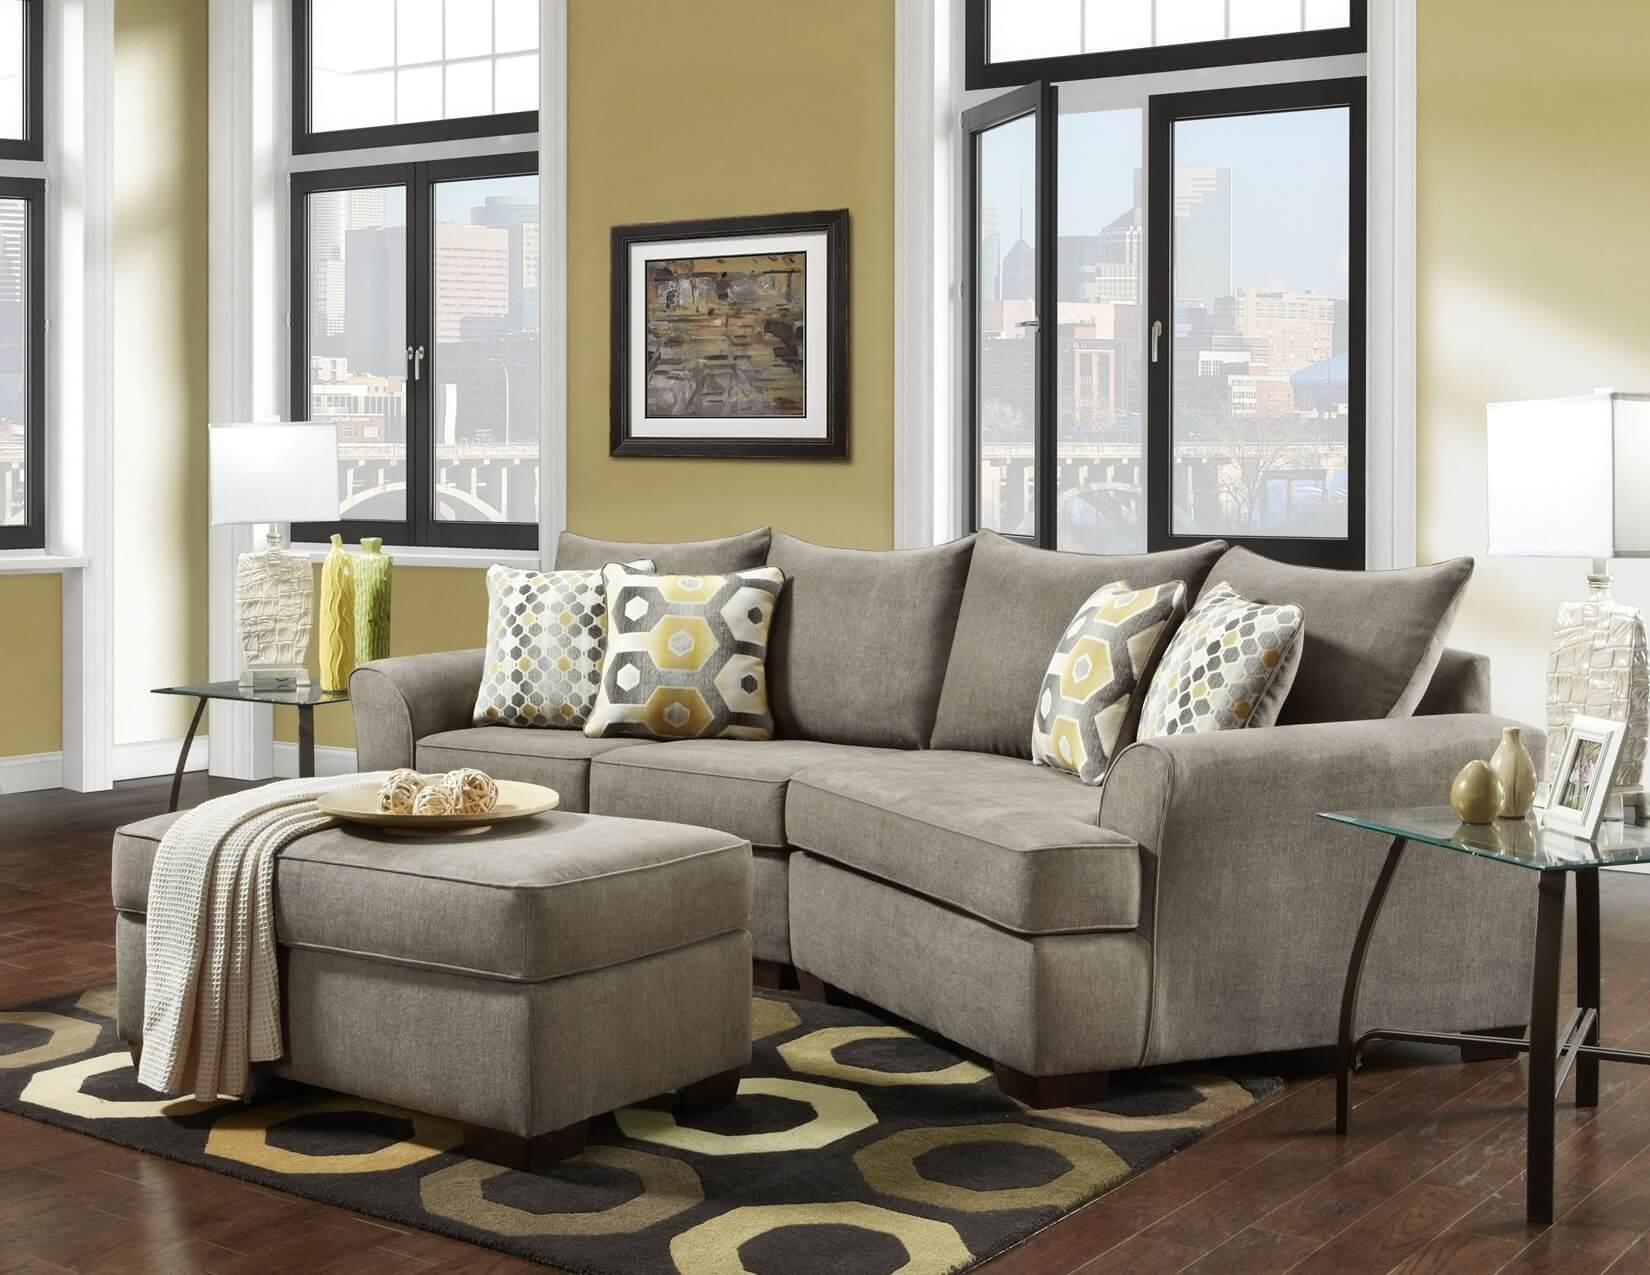 Essence Platinum 3 Pc Cuddler Sectional | Sectional Sofa Sets With Cuddler Sectional Sofa (Image 7 of 15)